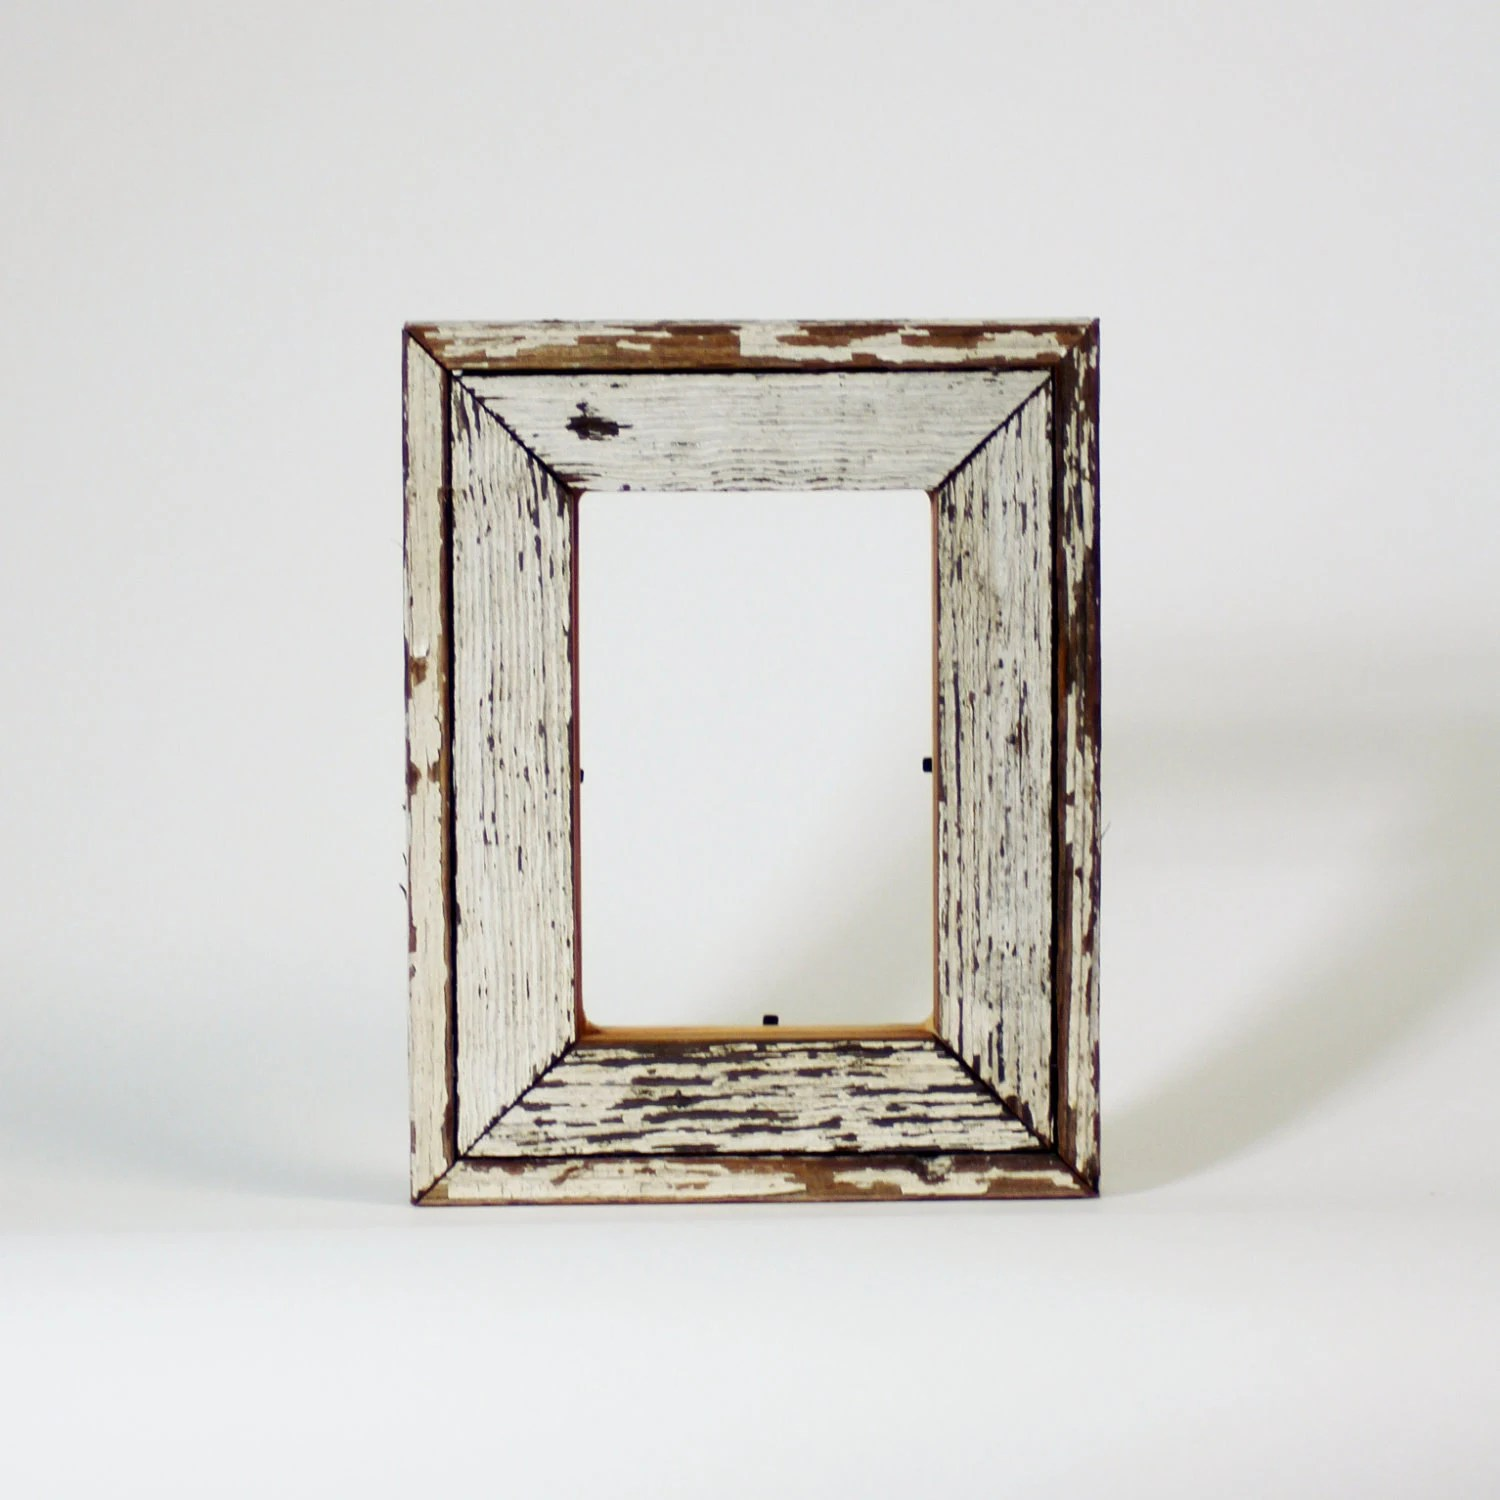 Reclaim Wood Frame - Antique Heart Pine White Frame Southern Reclaimed Wood 4x6 Ready to Ship - RestorationHarbor